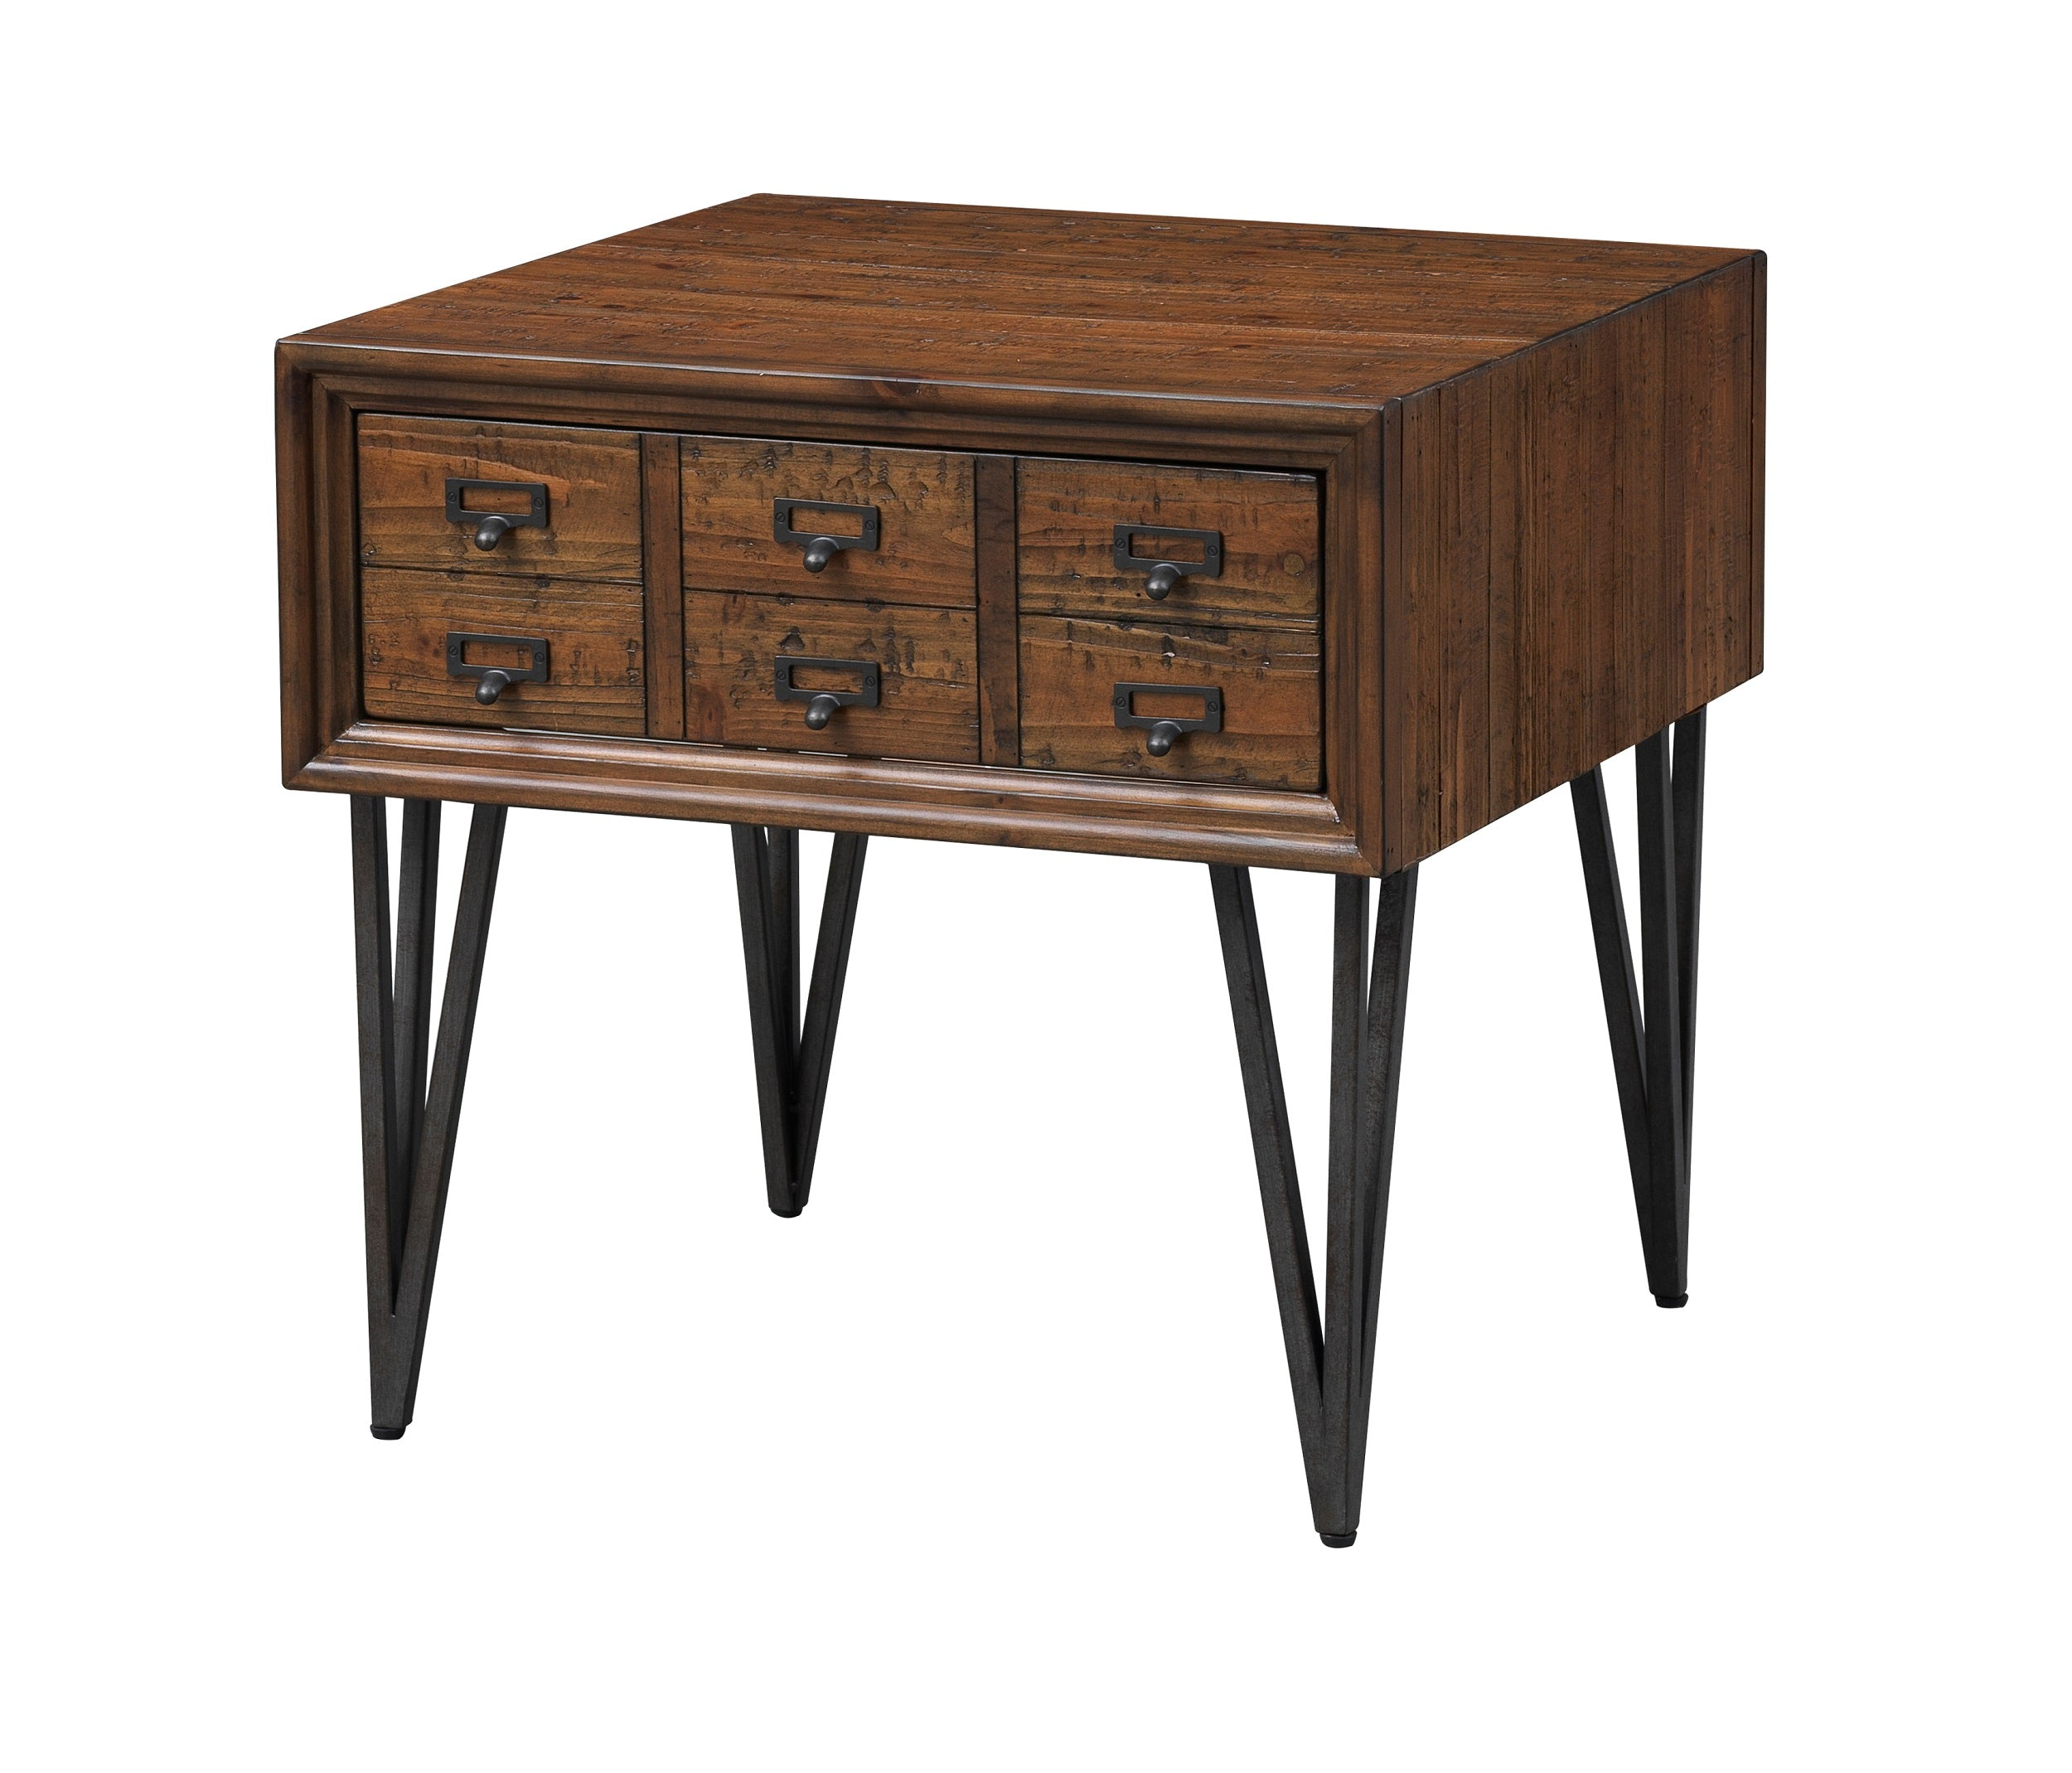 Options in Entry Table Décor